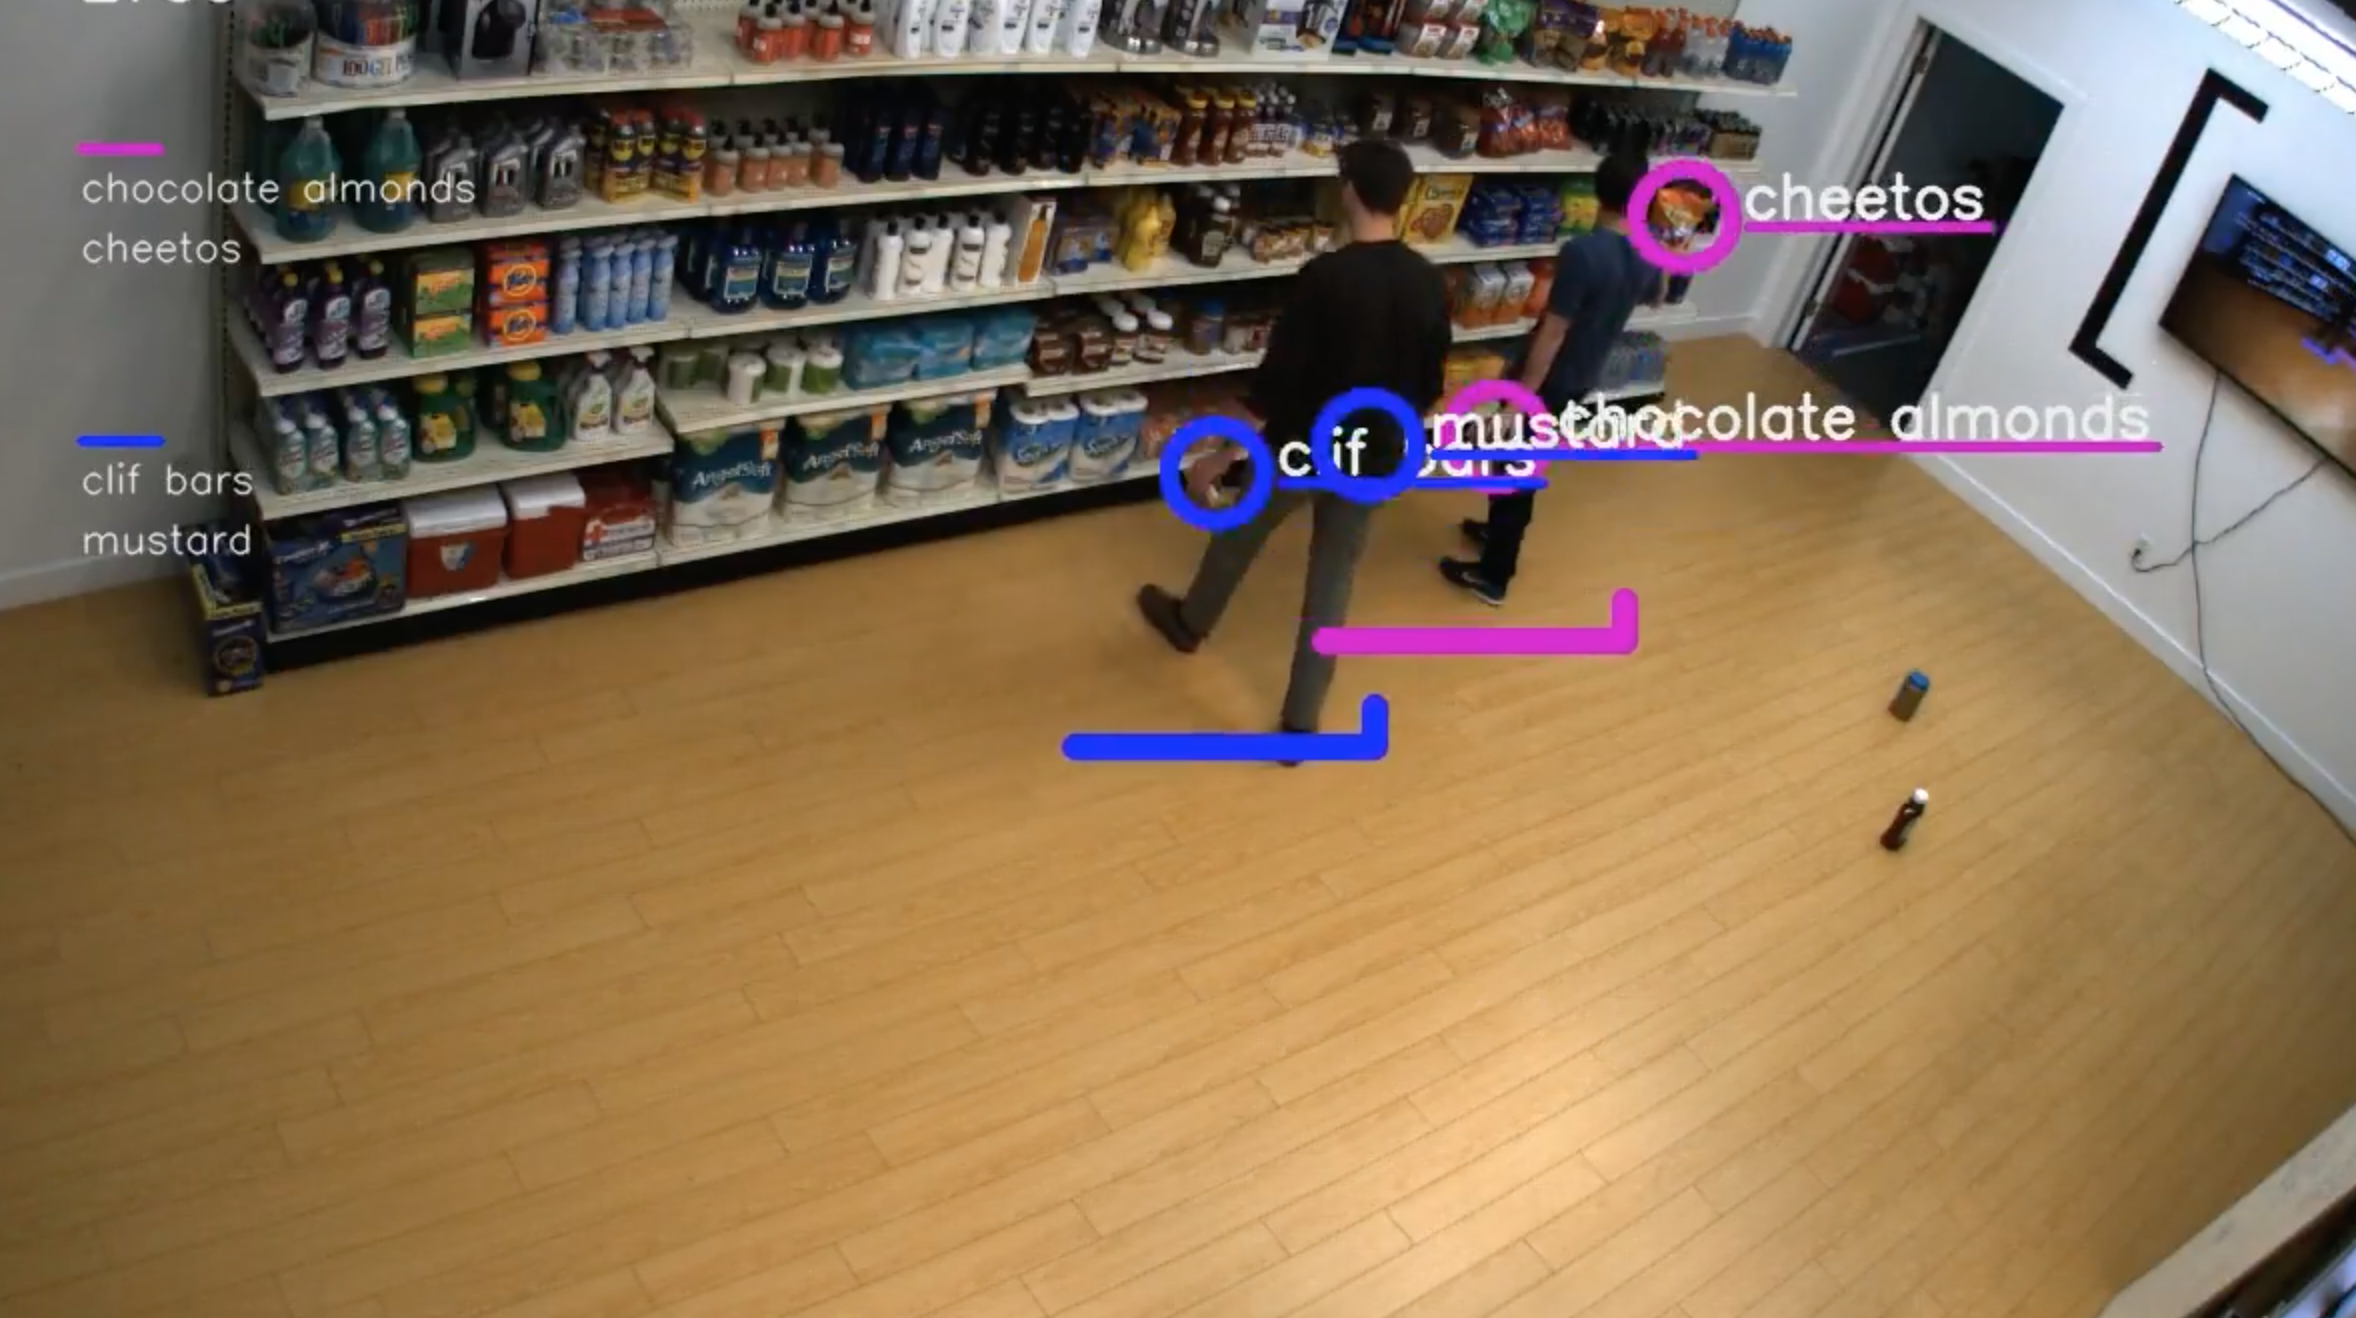 Standard Cognition gets $5M to build a machine vision-powered checkout